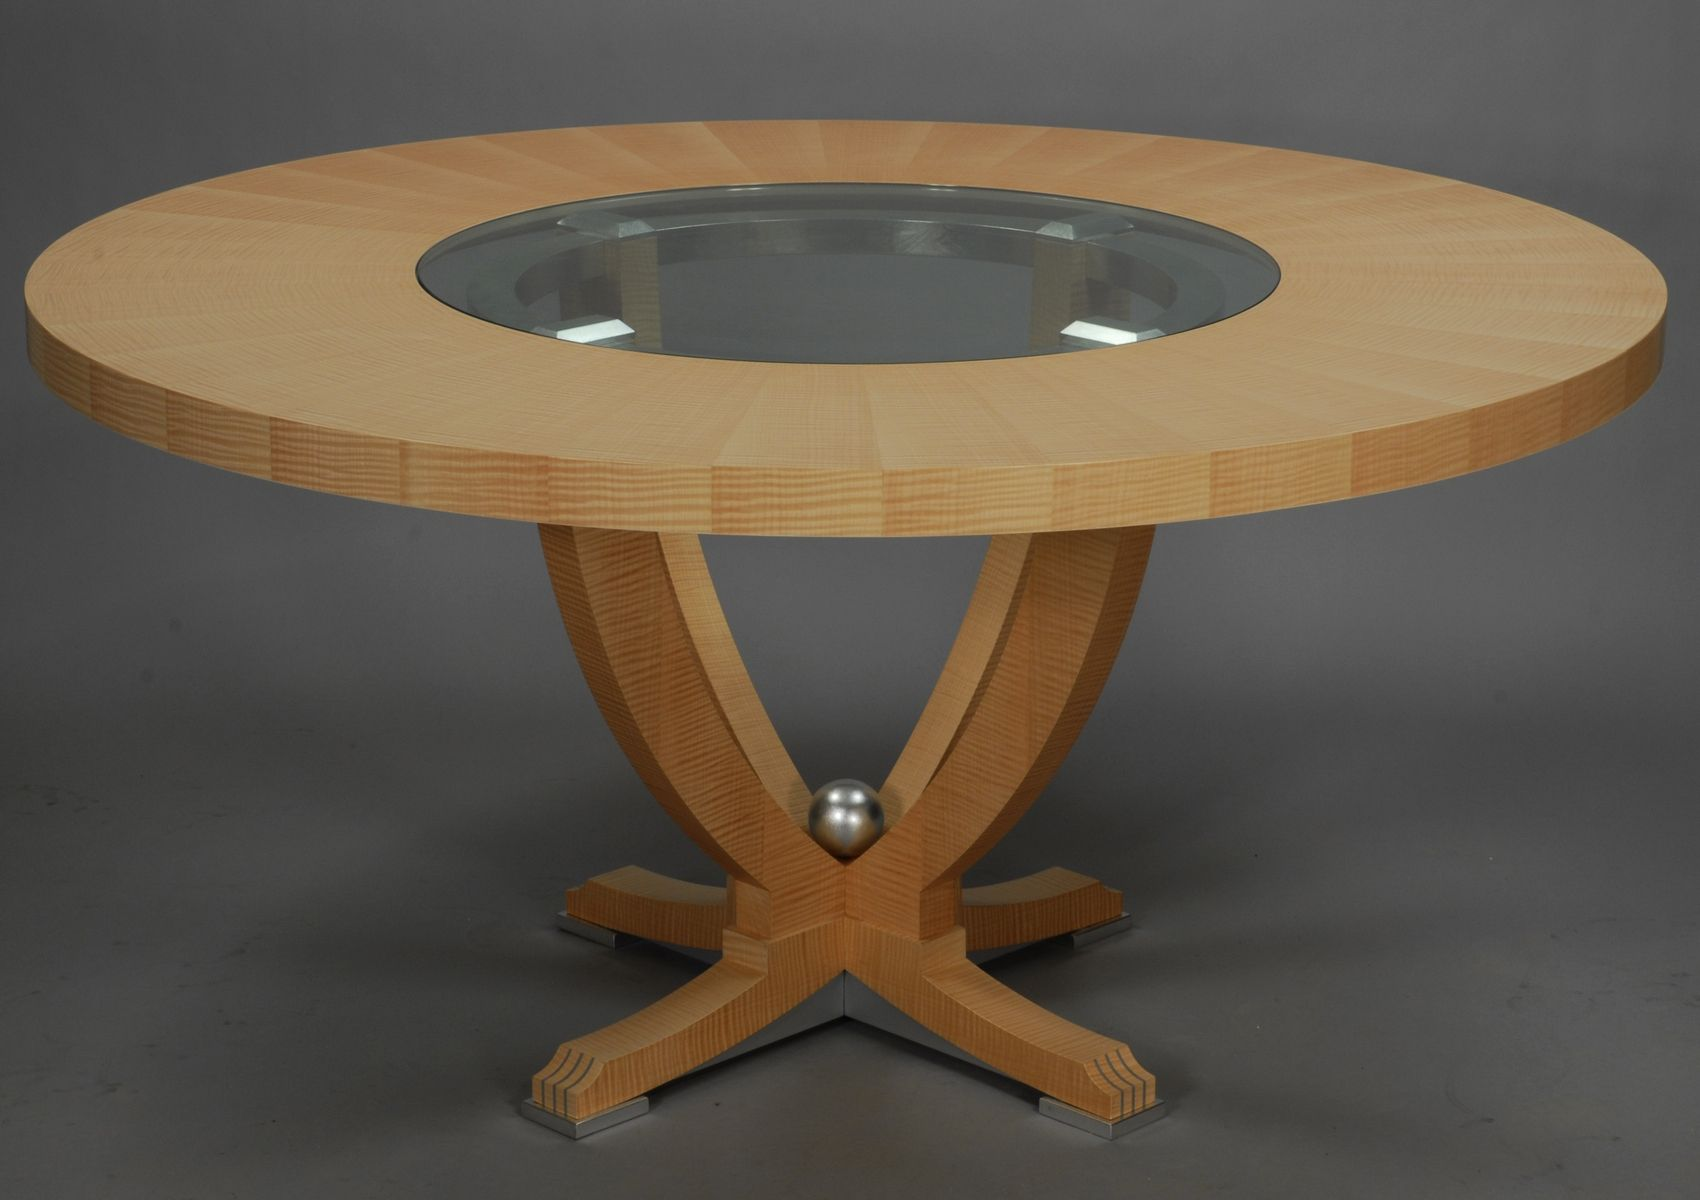 Custom Urn Dining Table With Center Glass Insert by Lee